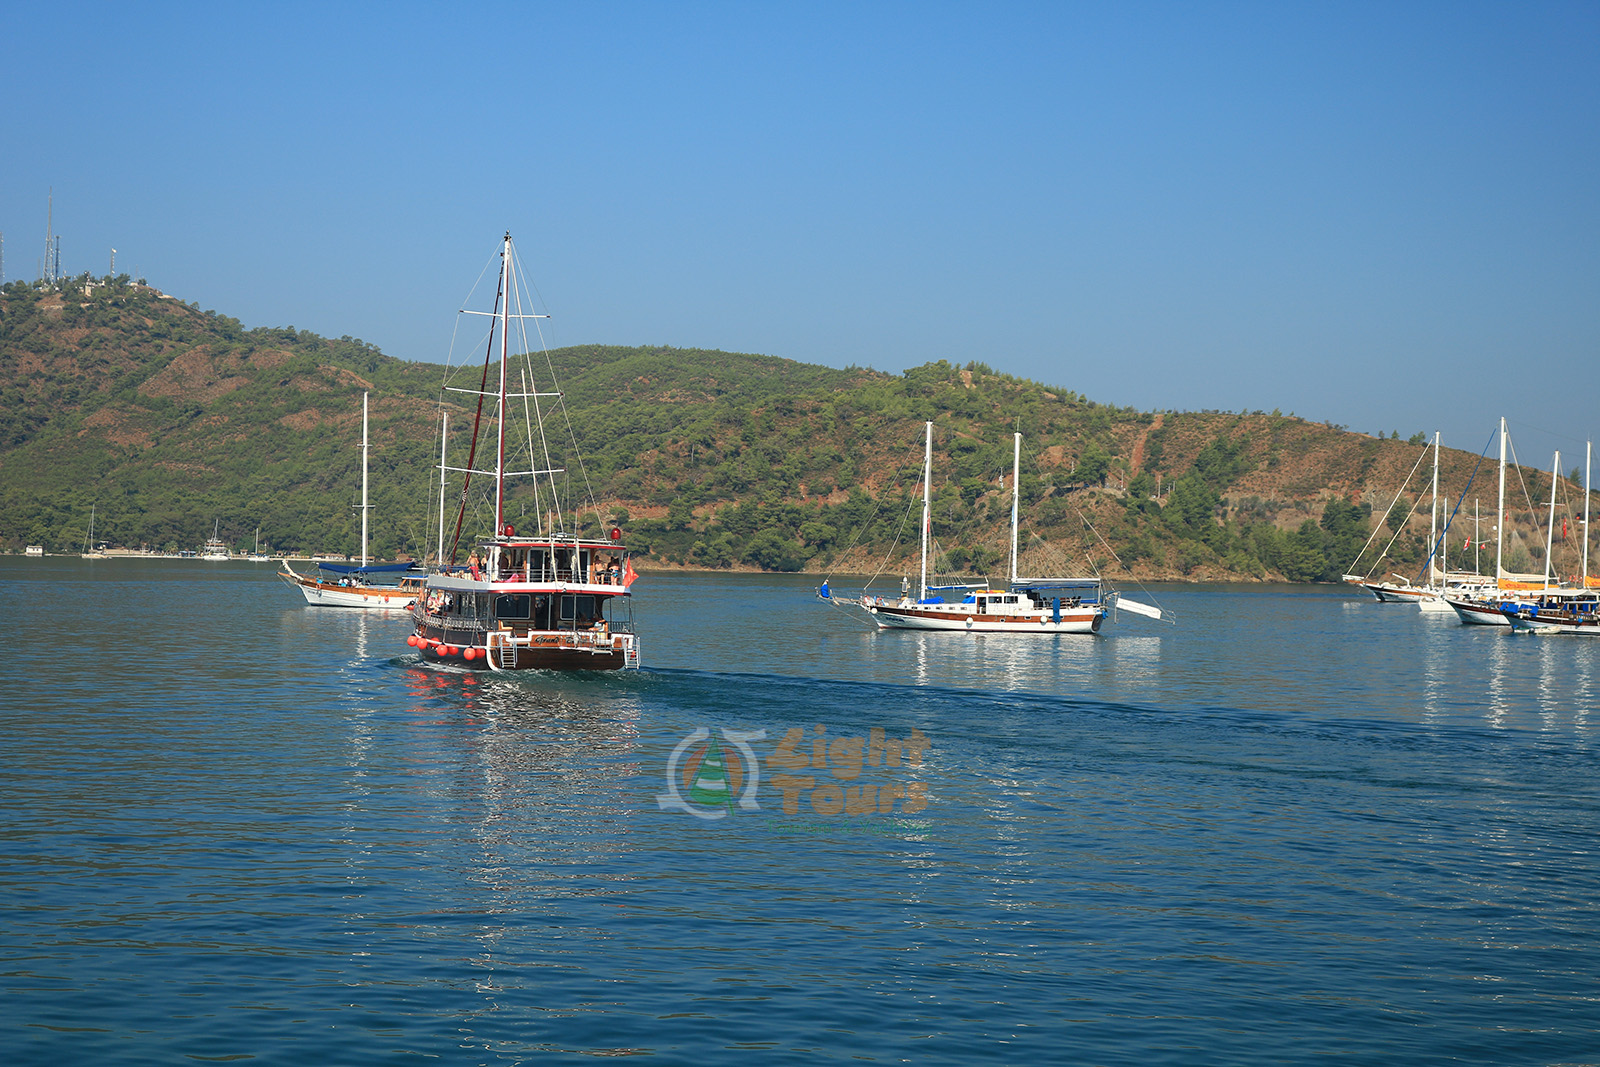 12 Islands Boat Tour, Fethiye, Rabbit Island, Gocek Island, Yassica Island, Aquarium Bay, Red Island,Light Tours Daily Tours, Discount Tours, Package Tours 369